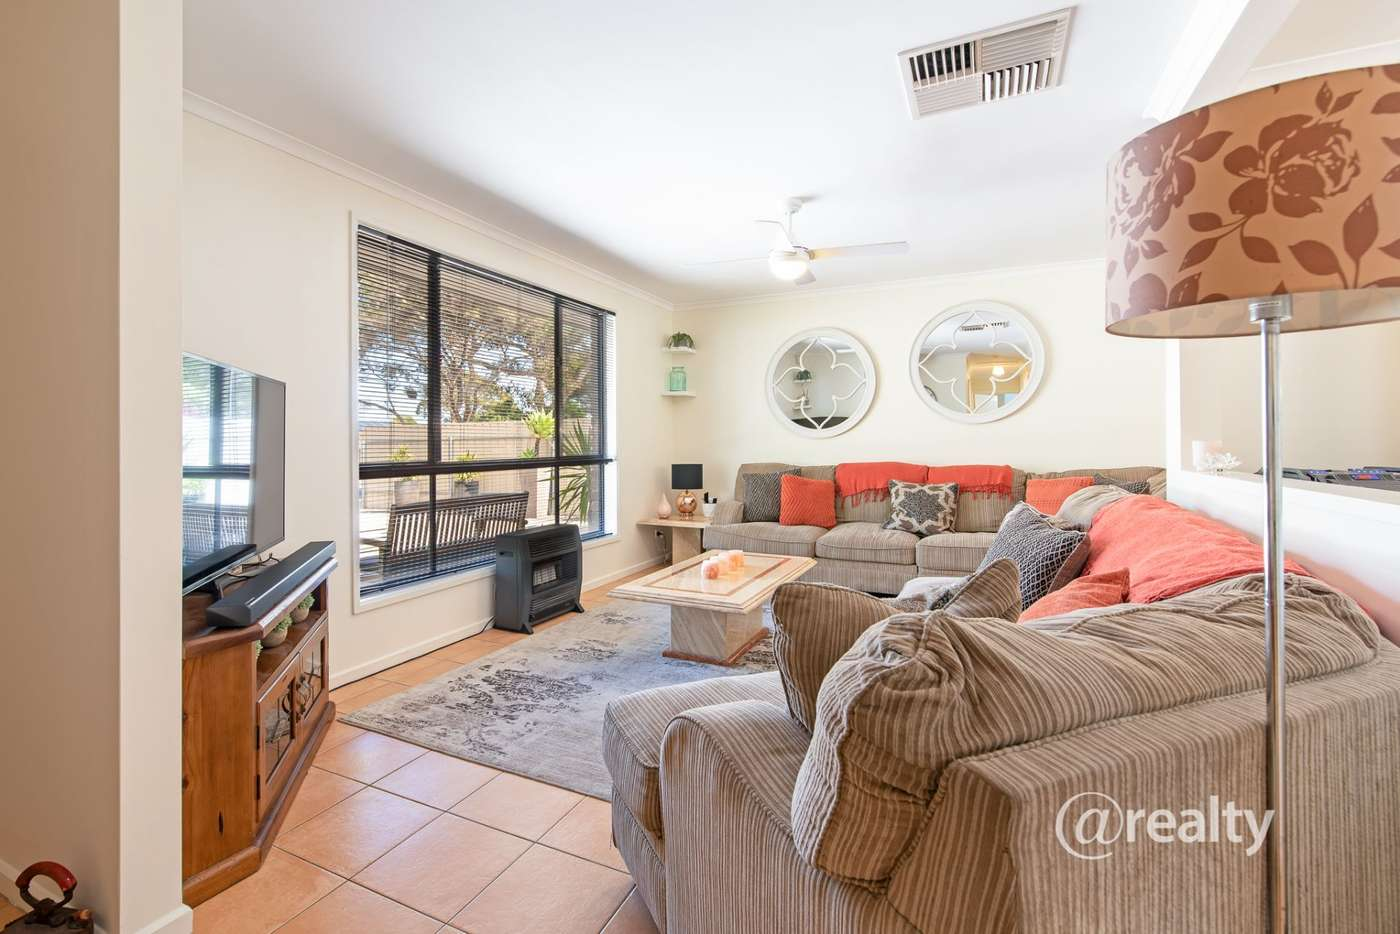 Fifth view of Homely house listing, 103 Taylors Avenue, Morphett Vale SA 5162